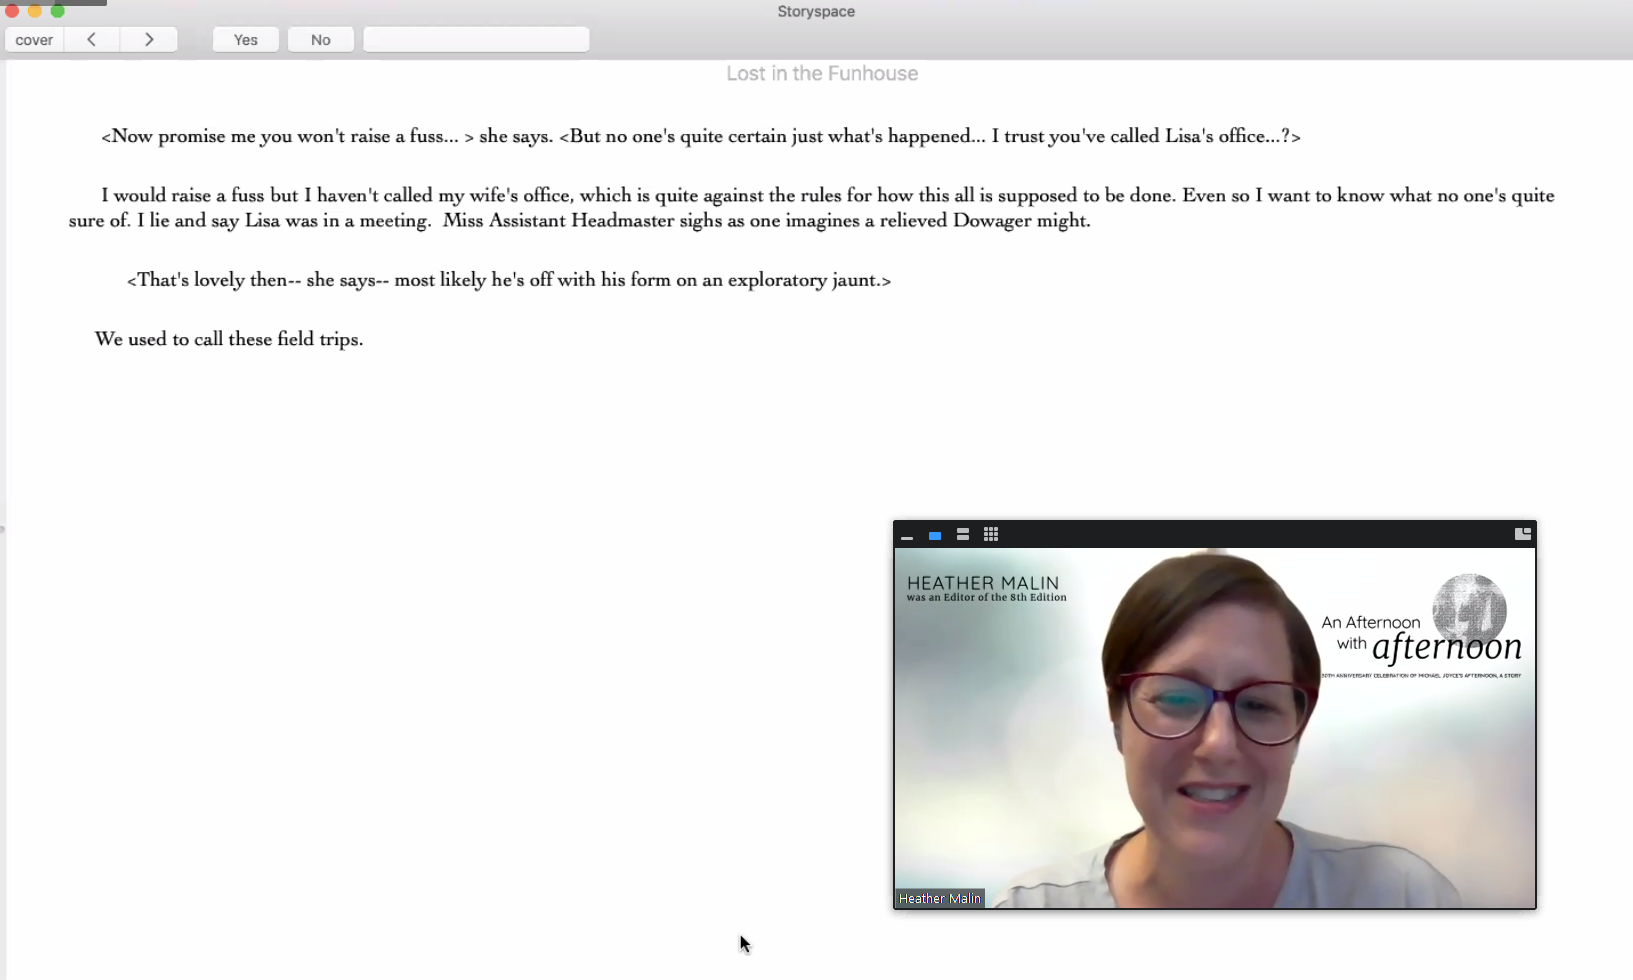 A screenshot of Heather Malin reading afternoon, a story on Zoom